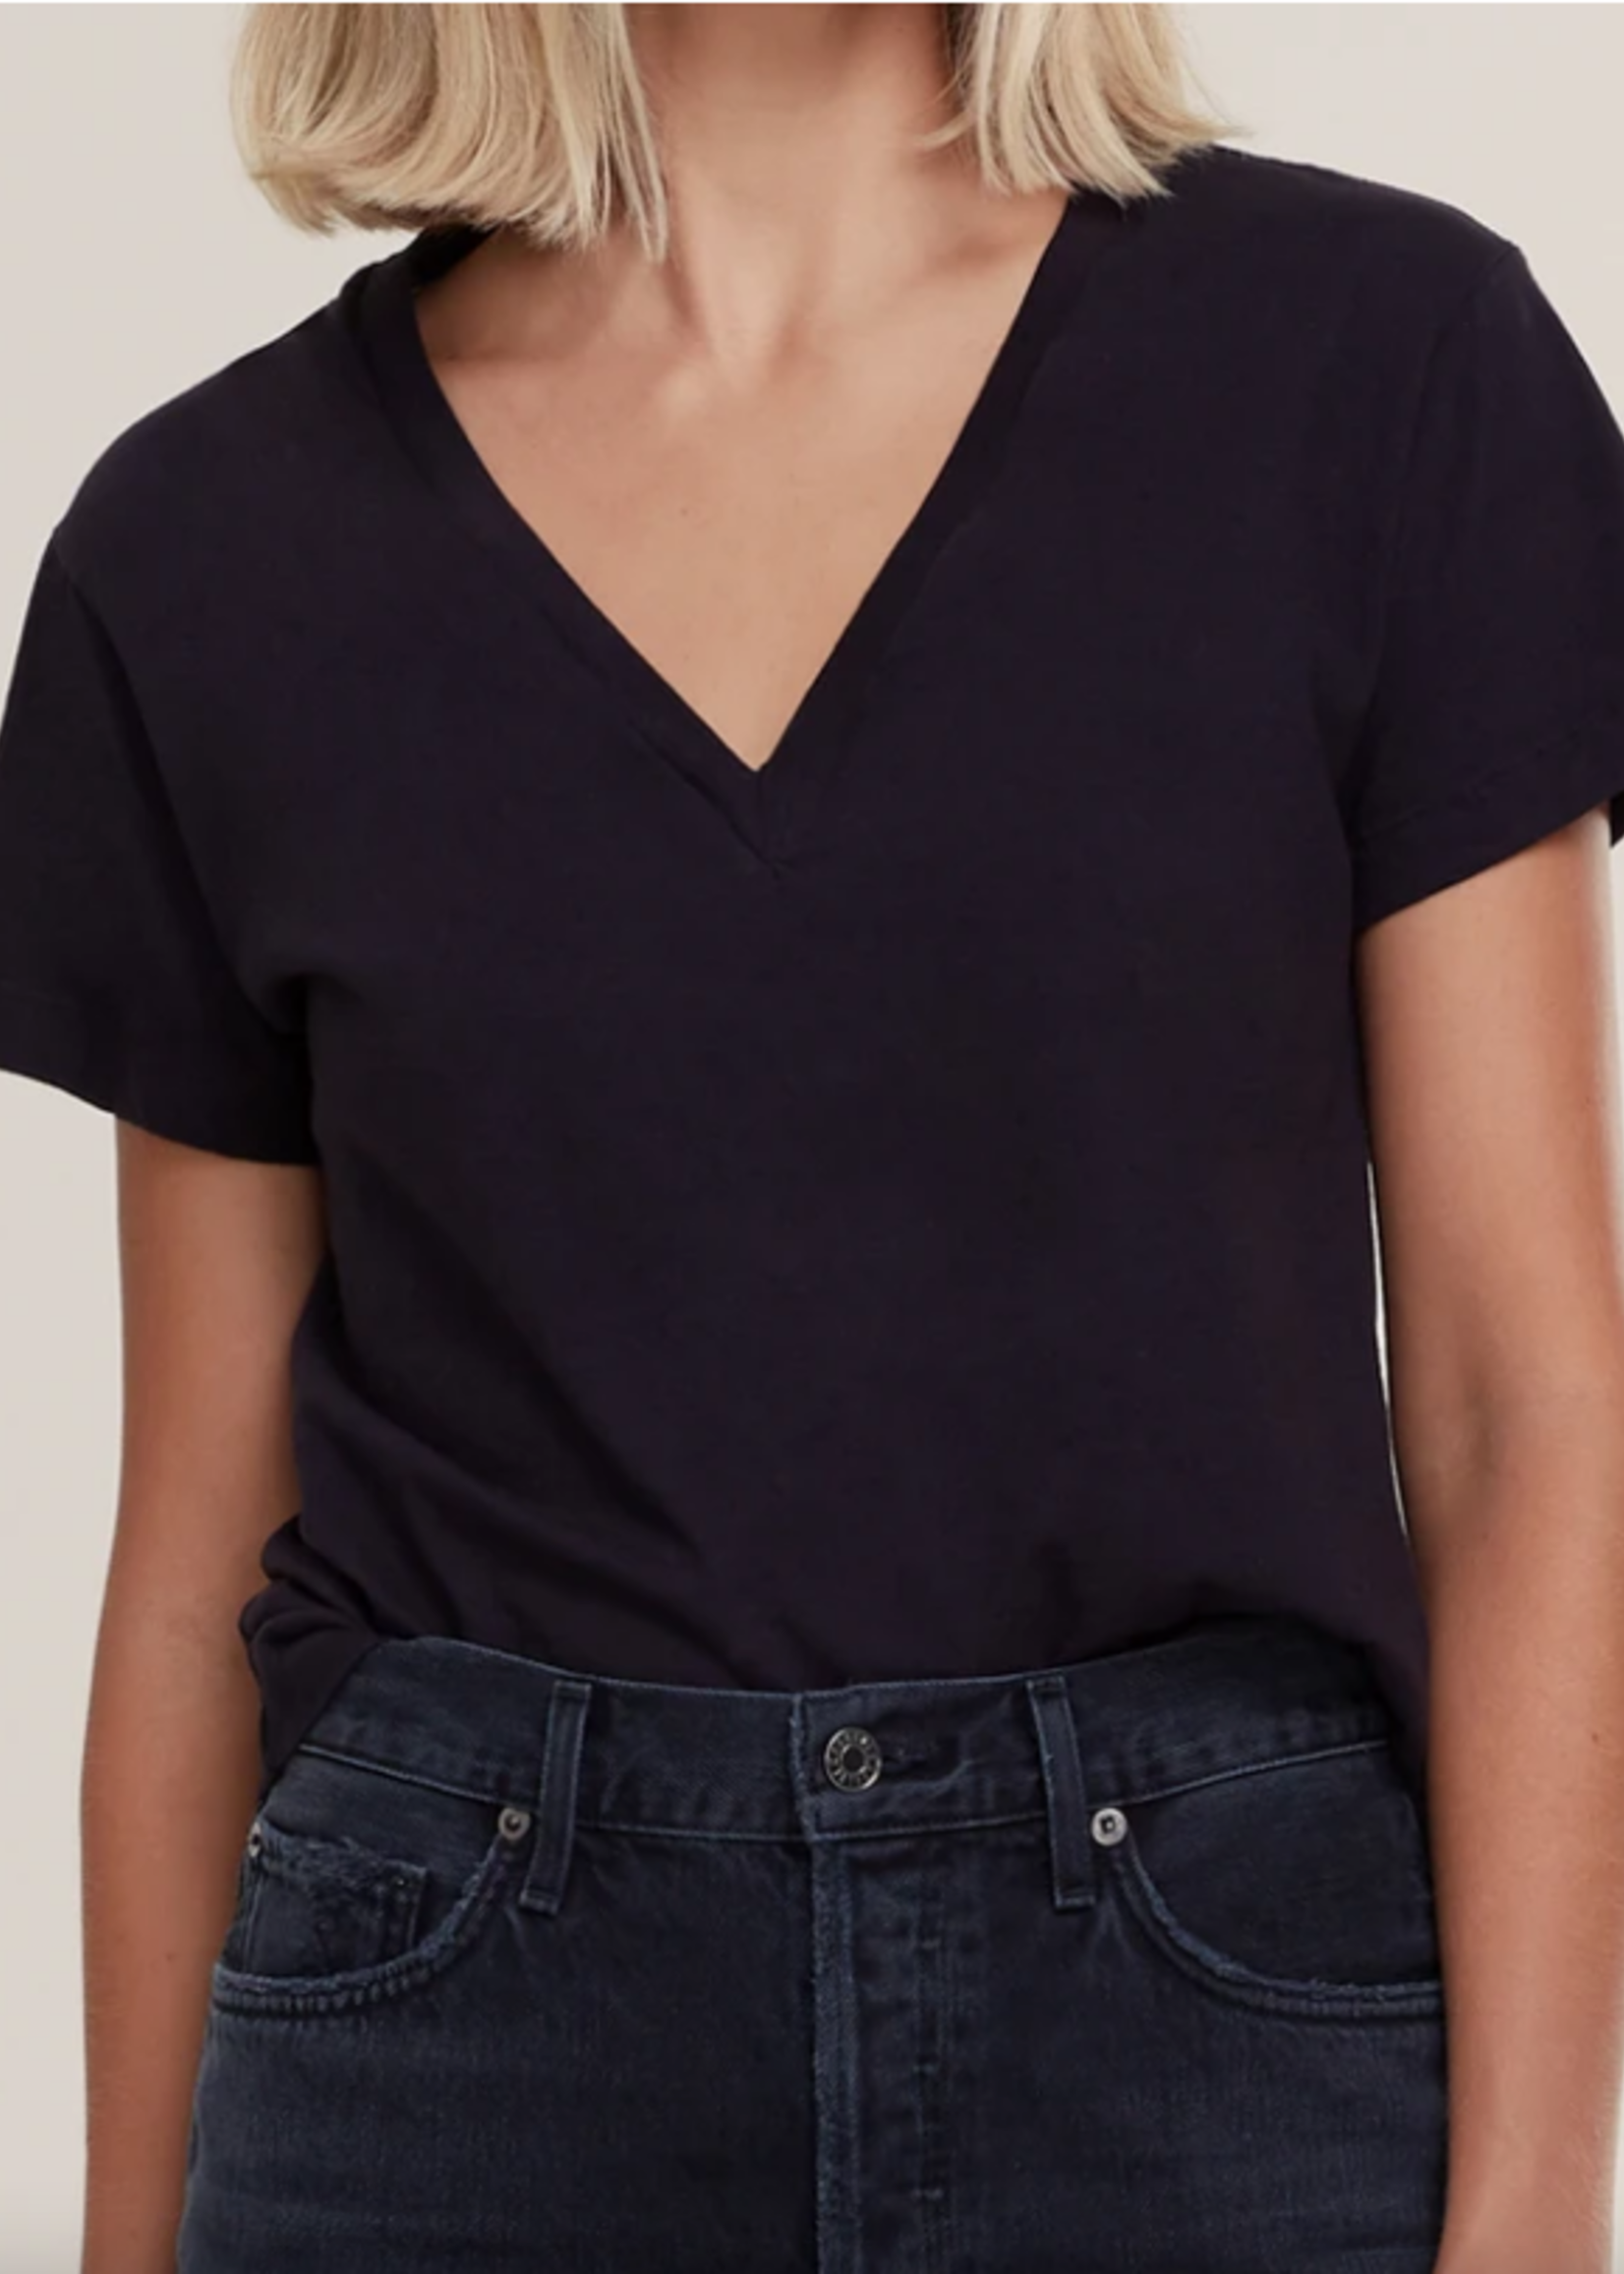 Elitaire Boutique Thea V Neck Tee in Black